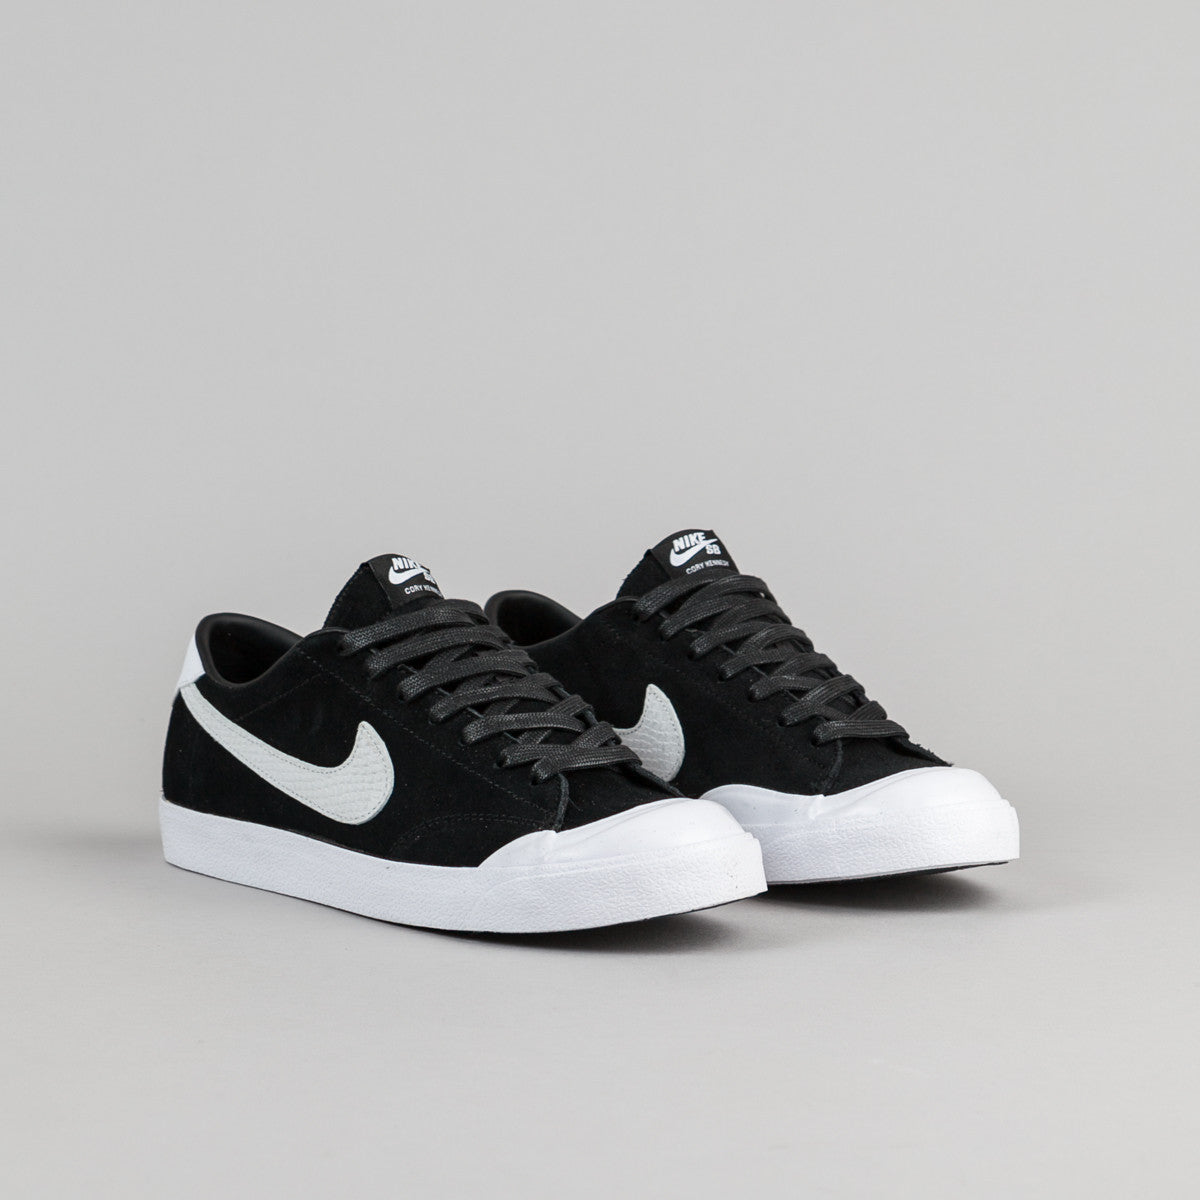 Nike SB All Court CK QS Shoes - Black / White